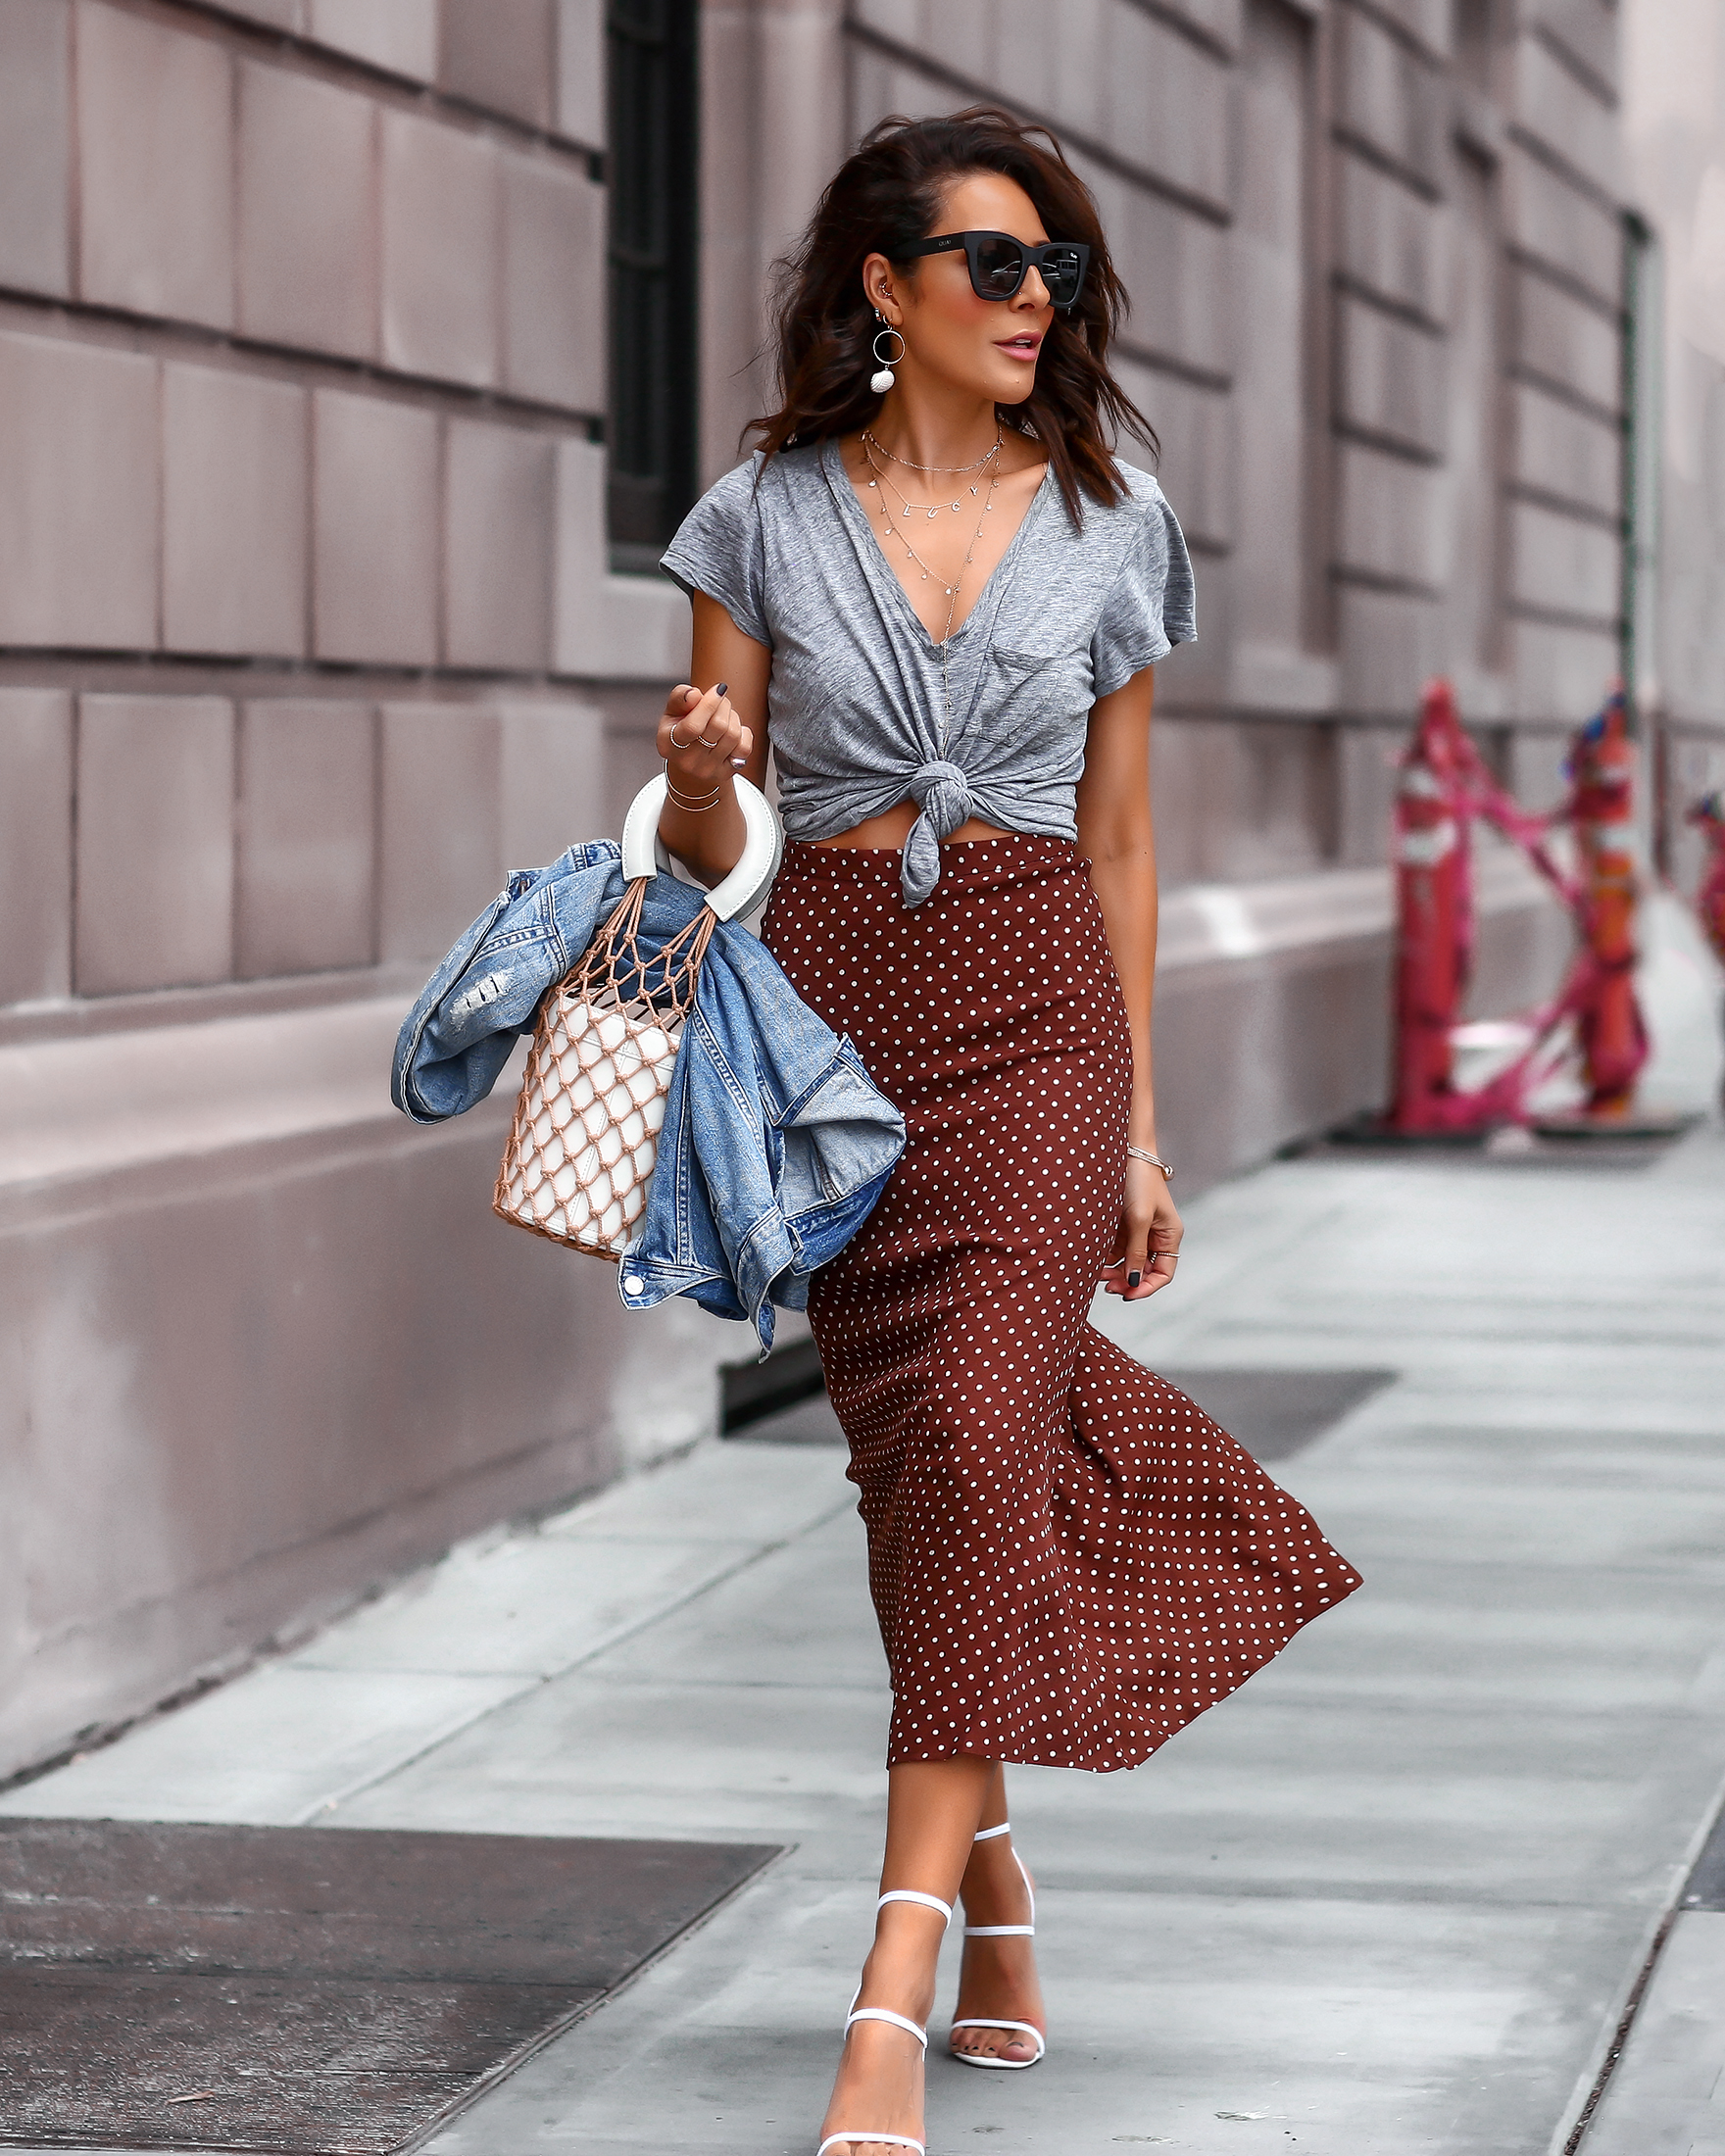 Brunette Woman Walking in Nordstrom Summer Fashion